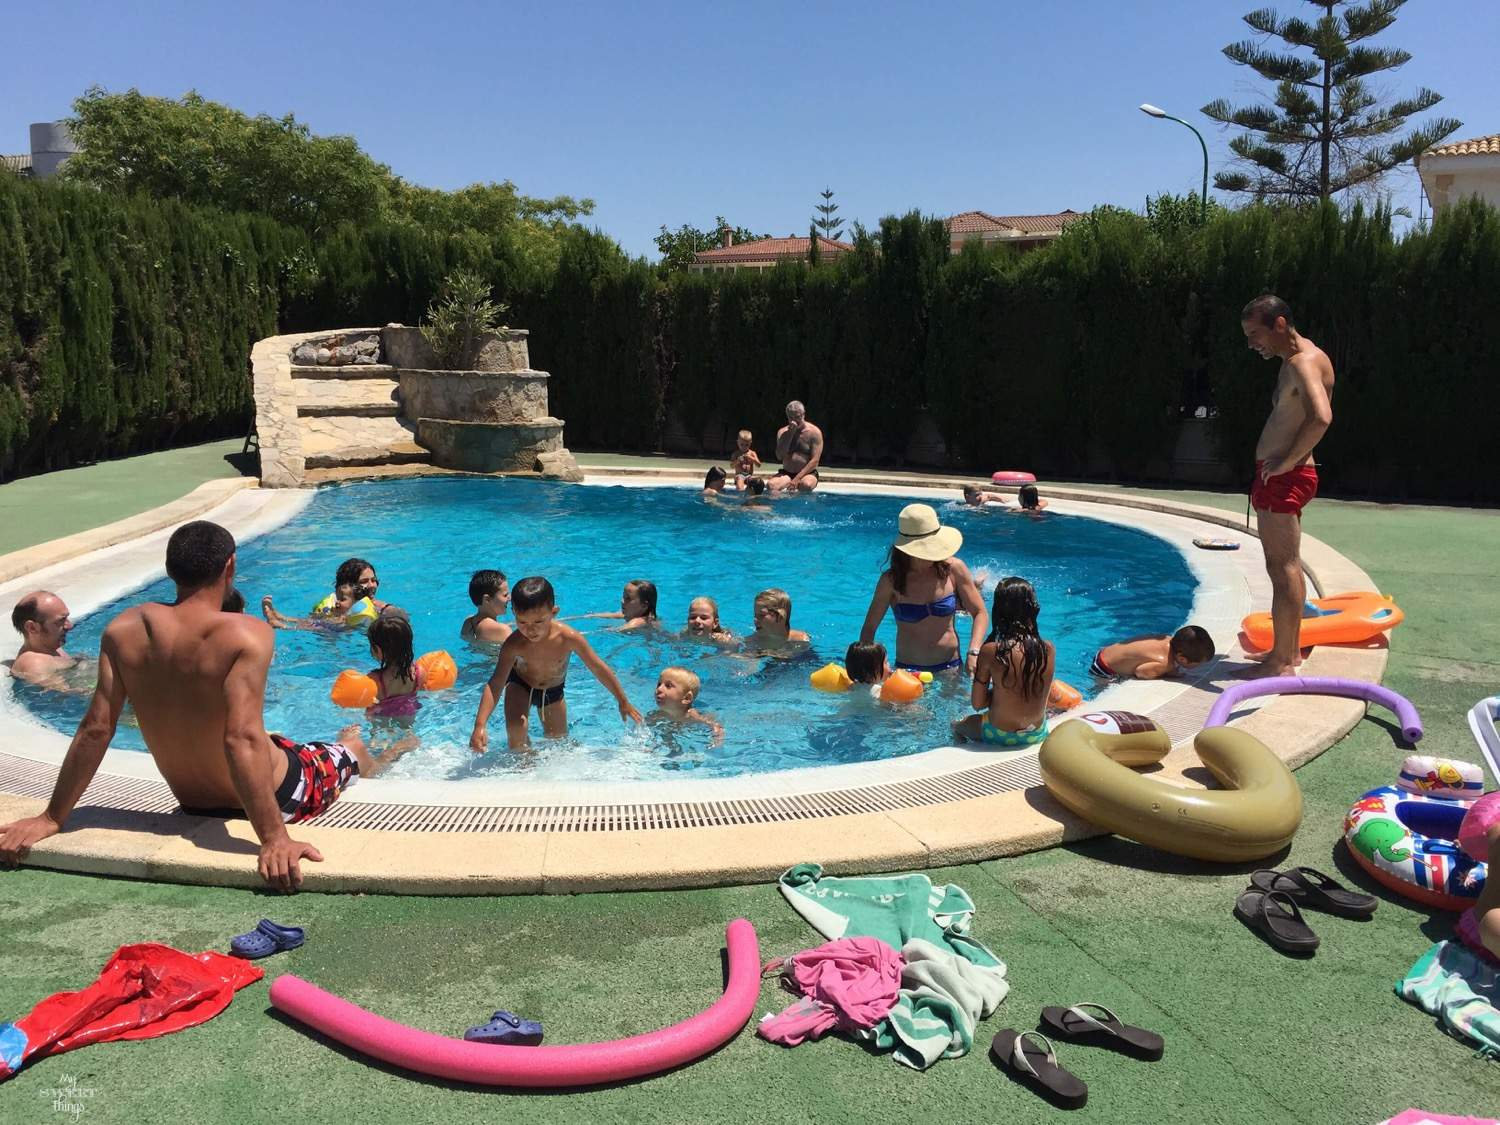 What to do in summer in Mallorca - Having fun at the pool